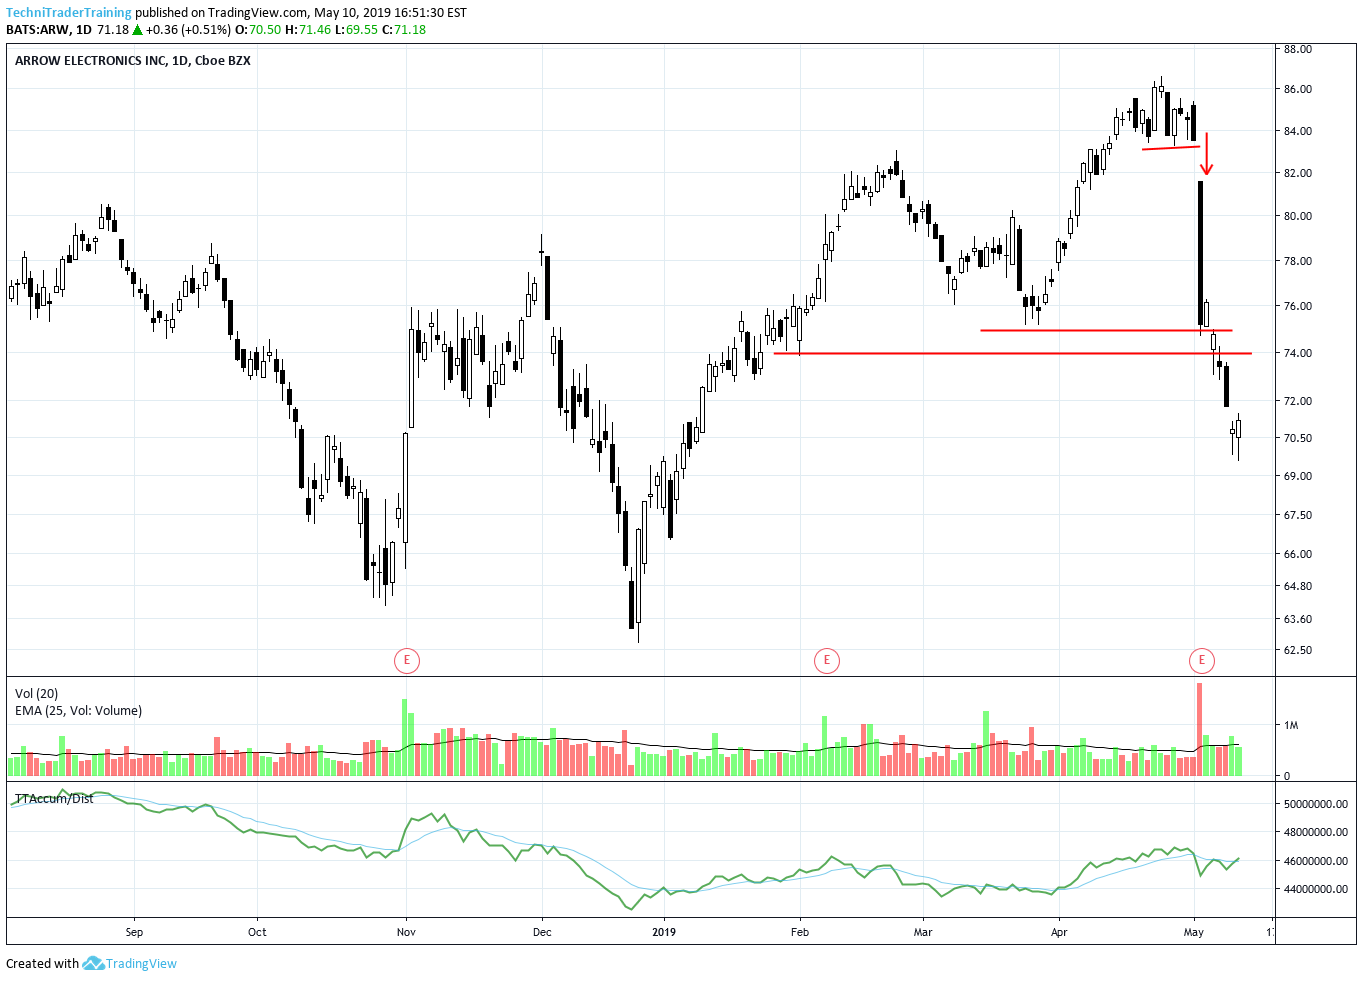 ARW: Selling Short Profits with HFTs for NYSE:ARW by TechniTraderTraining —  TradingView India